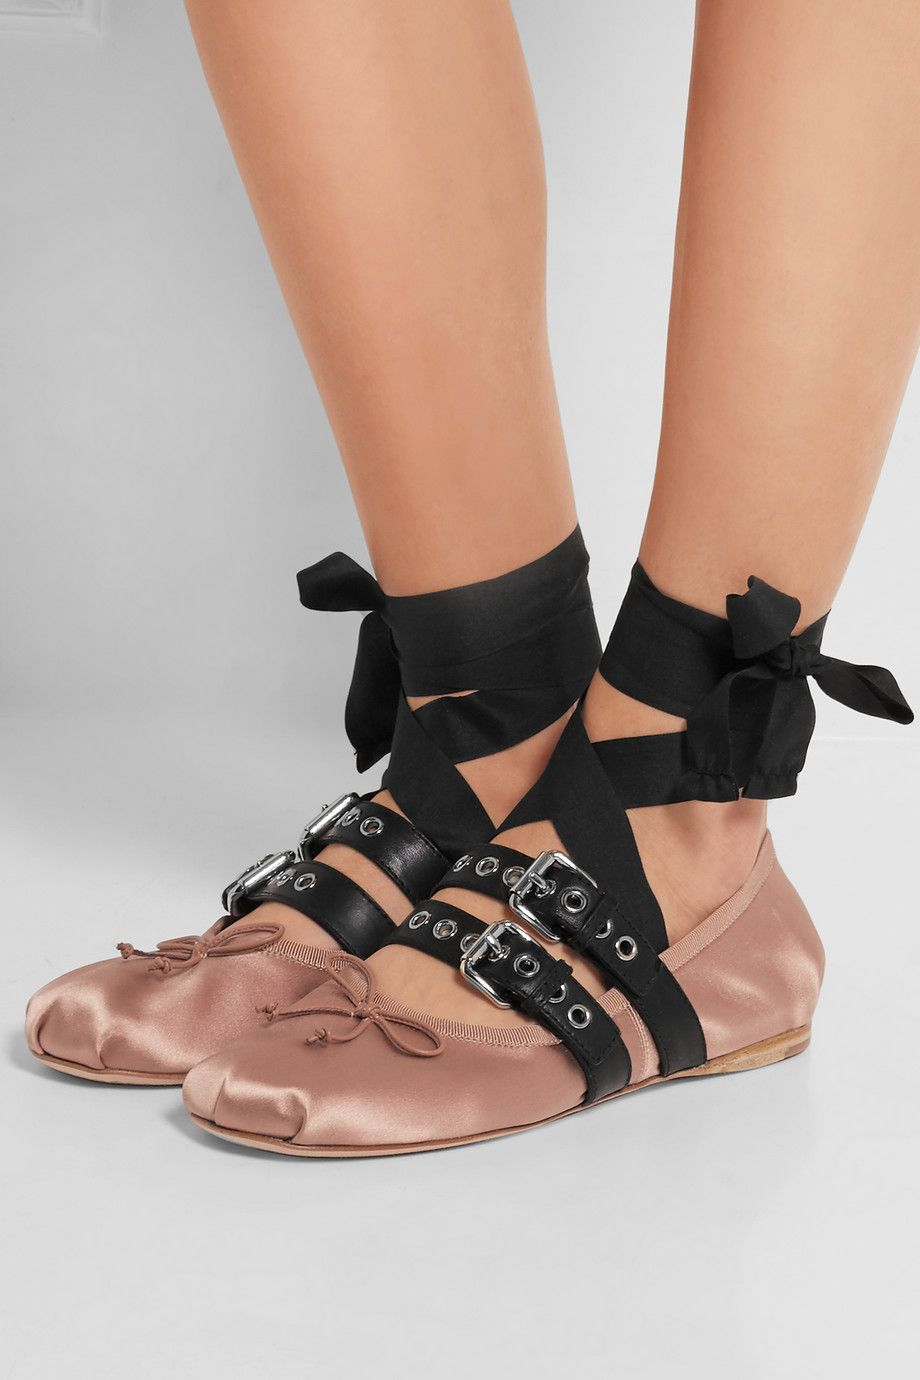 e592bf0bda3 Miu Miu buckled leather and satin ballet flats